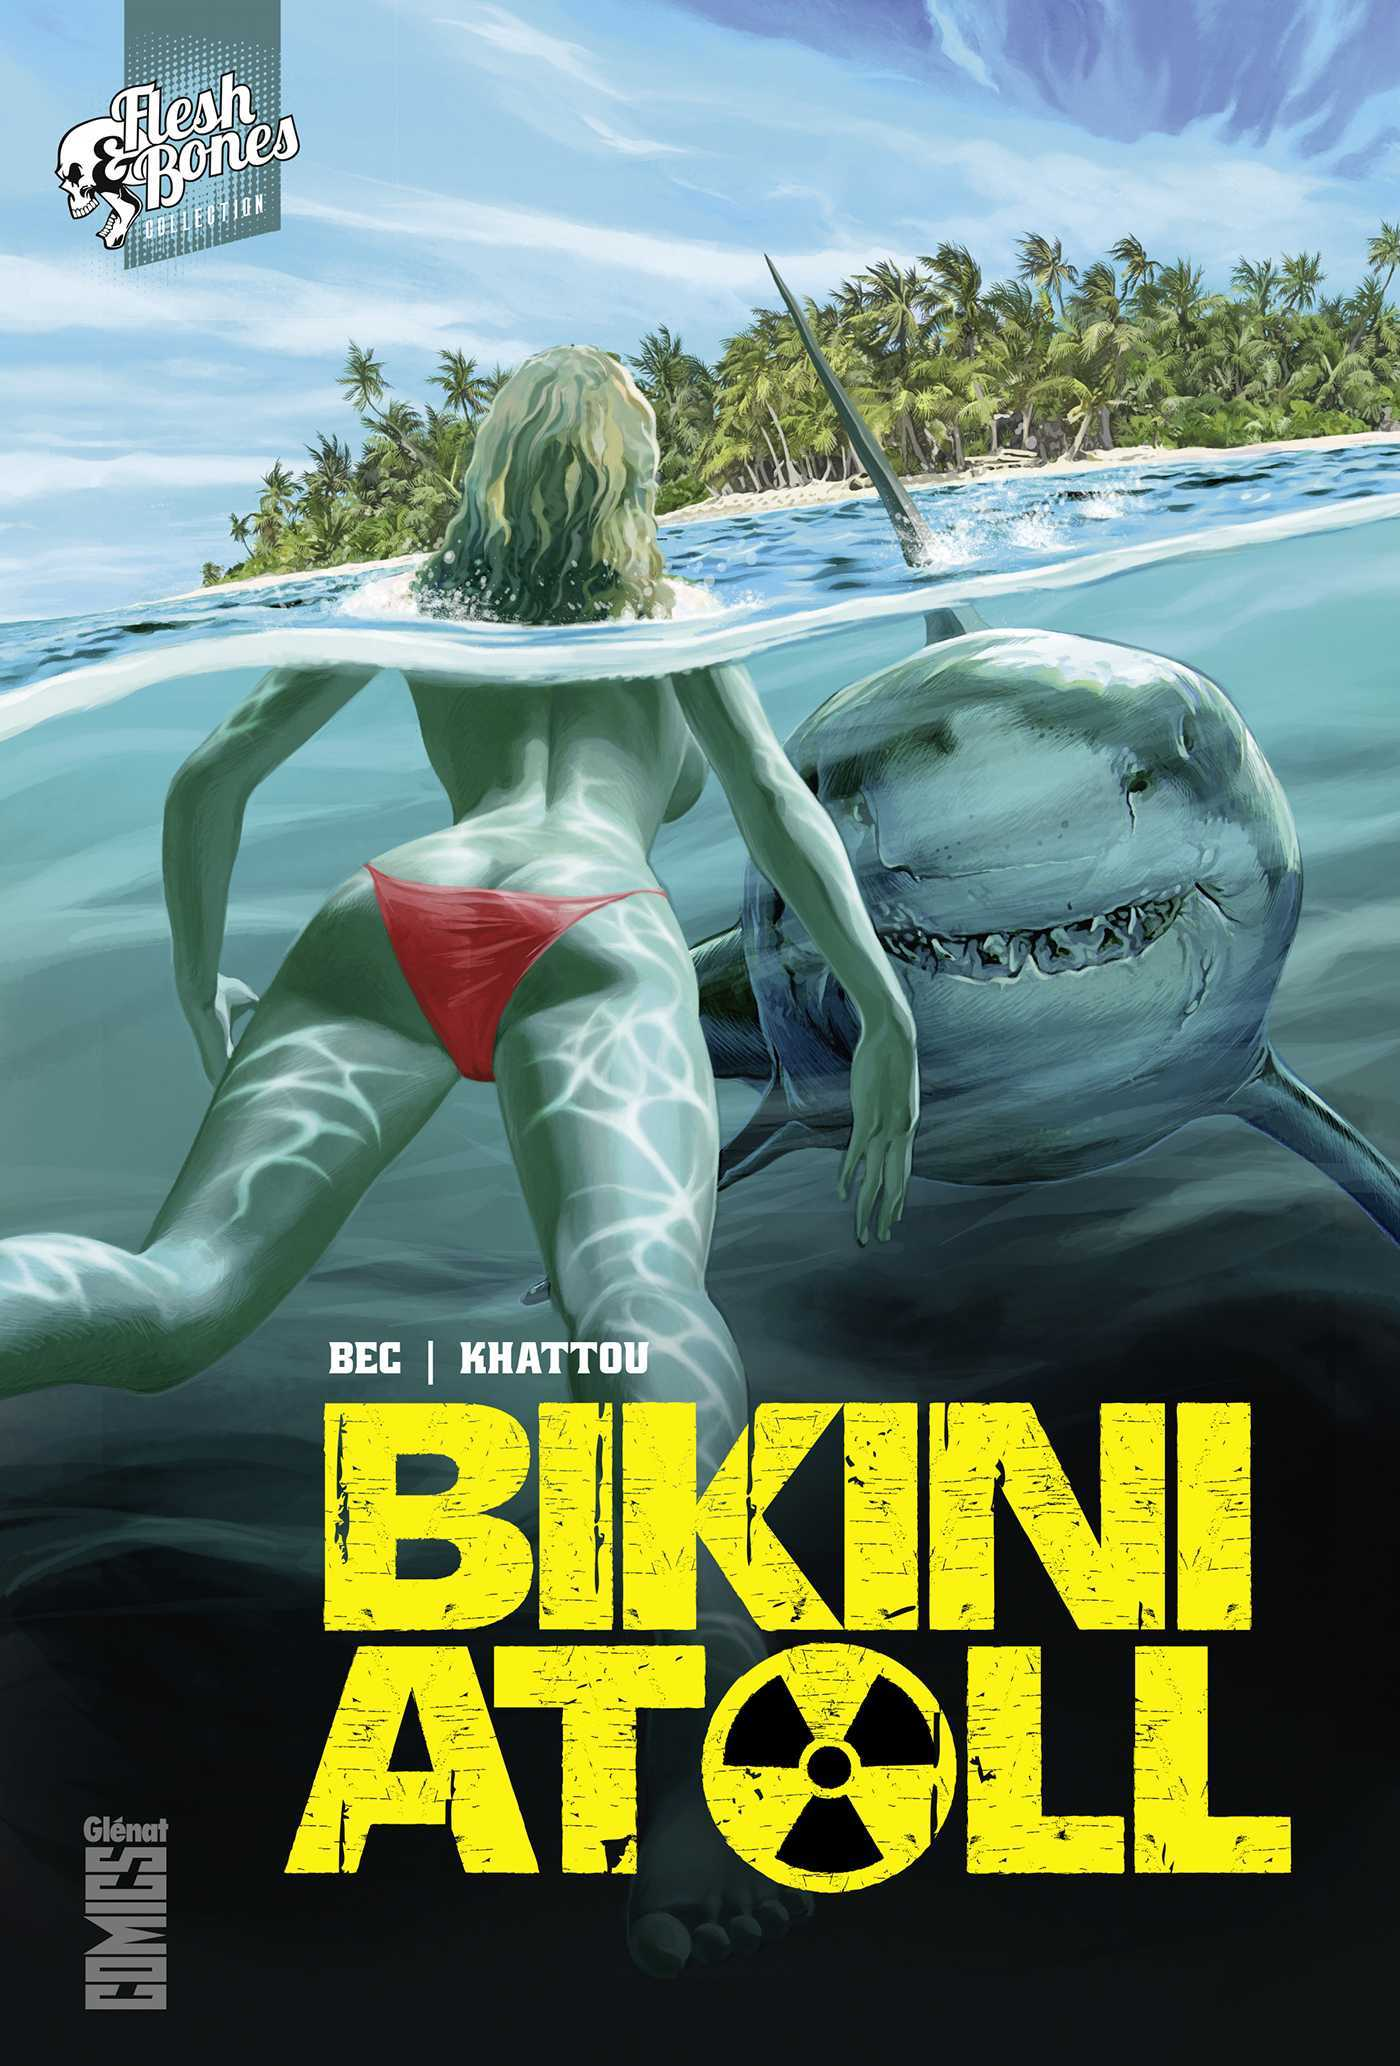 Bikini atoll, mutant anthropophage pour touristes aventuriers